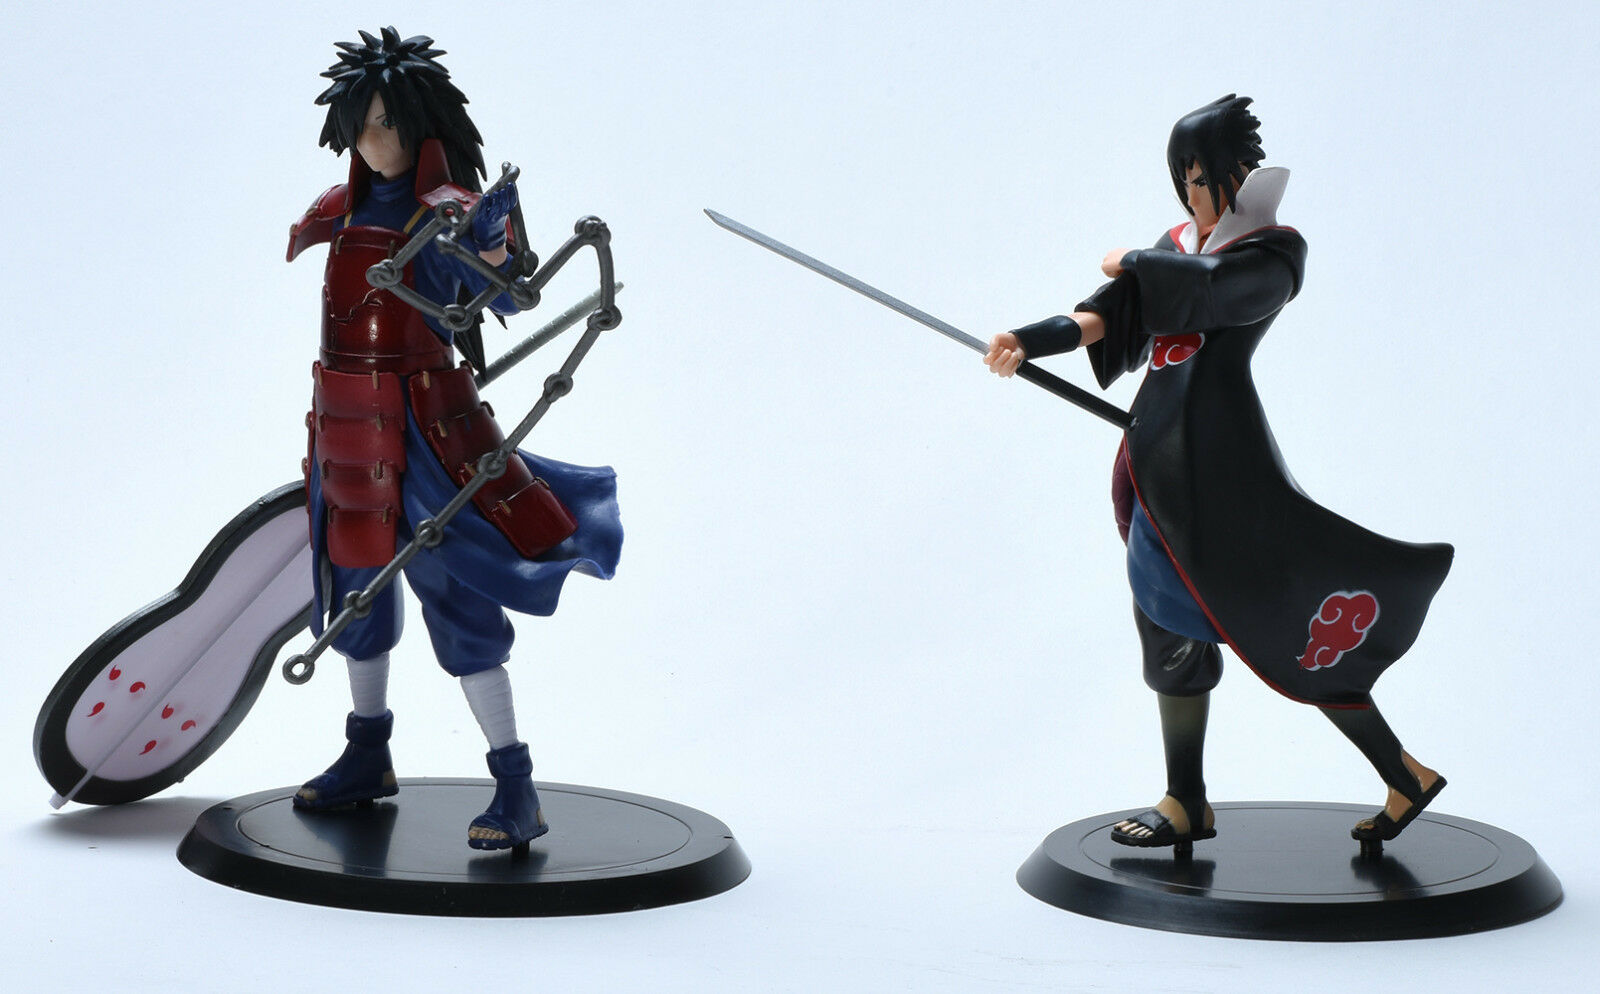 Naruto Uchiha Sasuke Madara 2 Pcs Pcv Action Figures Set 7 Figure Inches Tall Each Ship From Usa